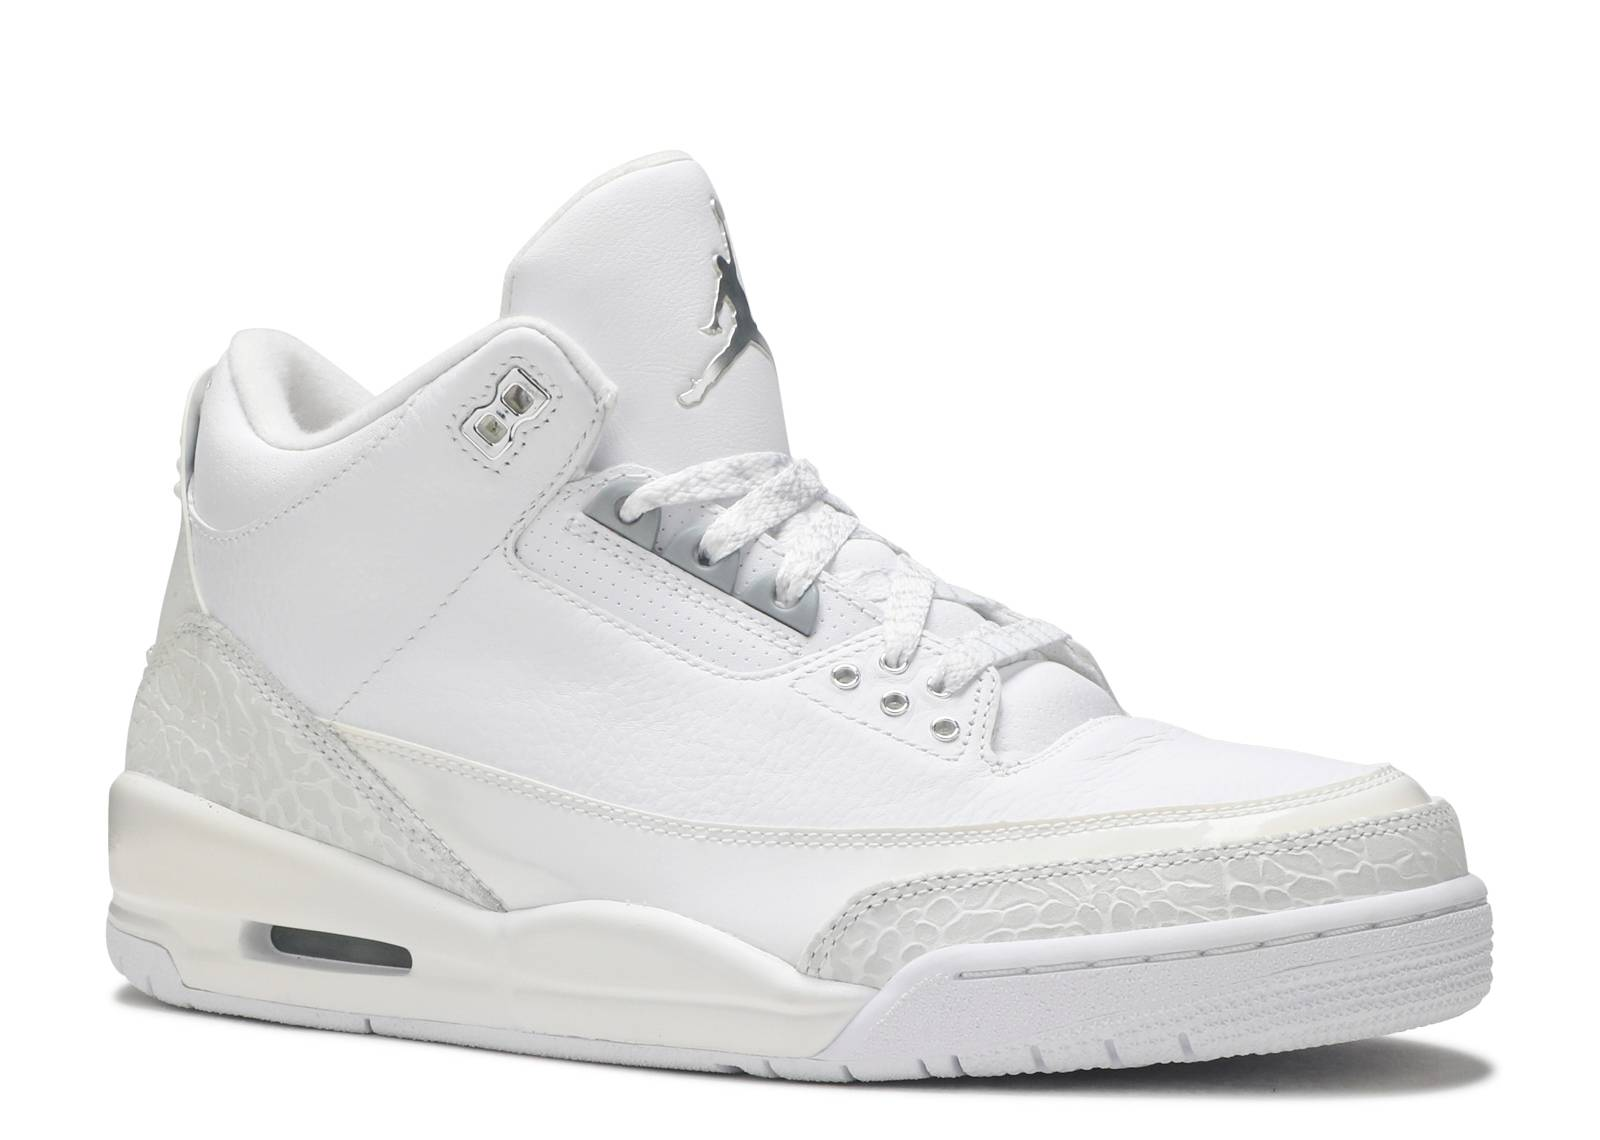 Air Jordan 3 Retro 25th Anniversary